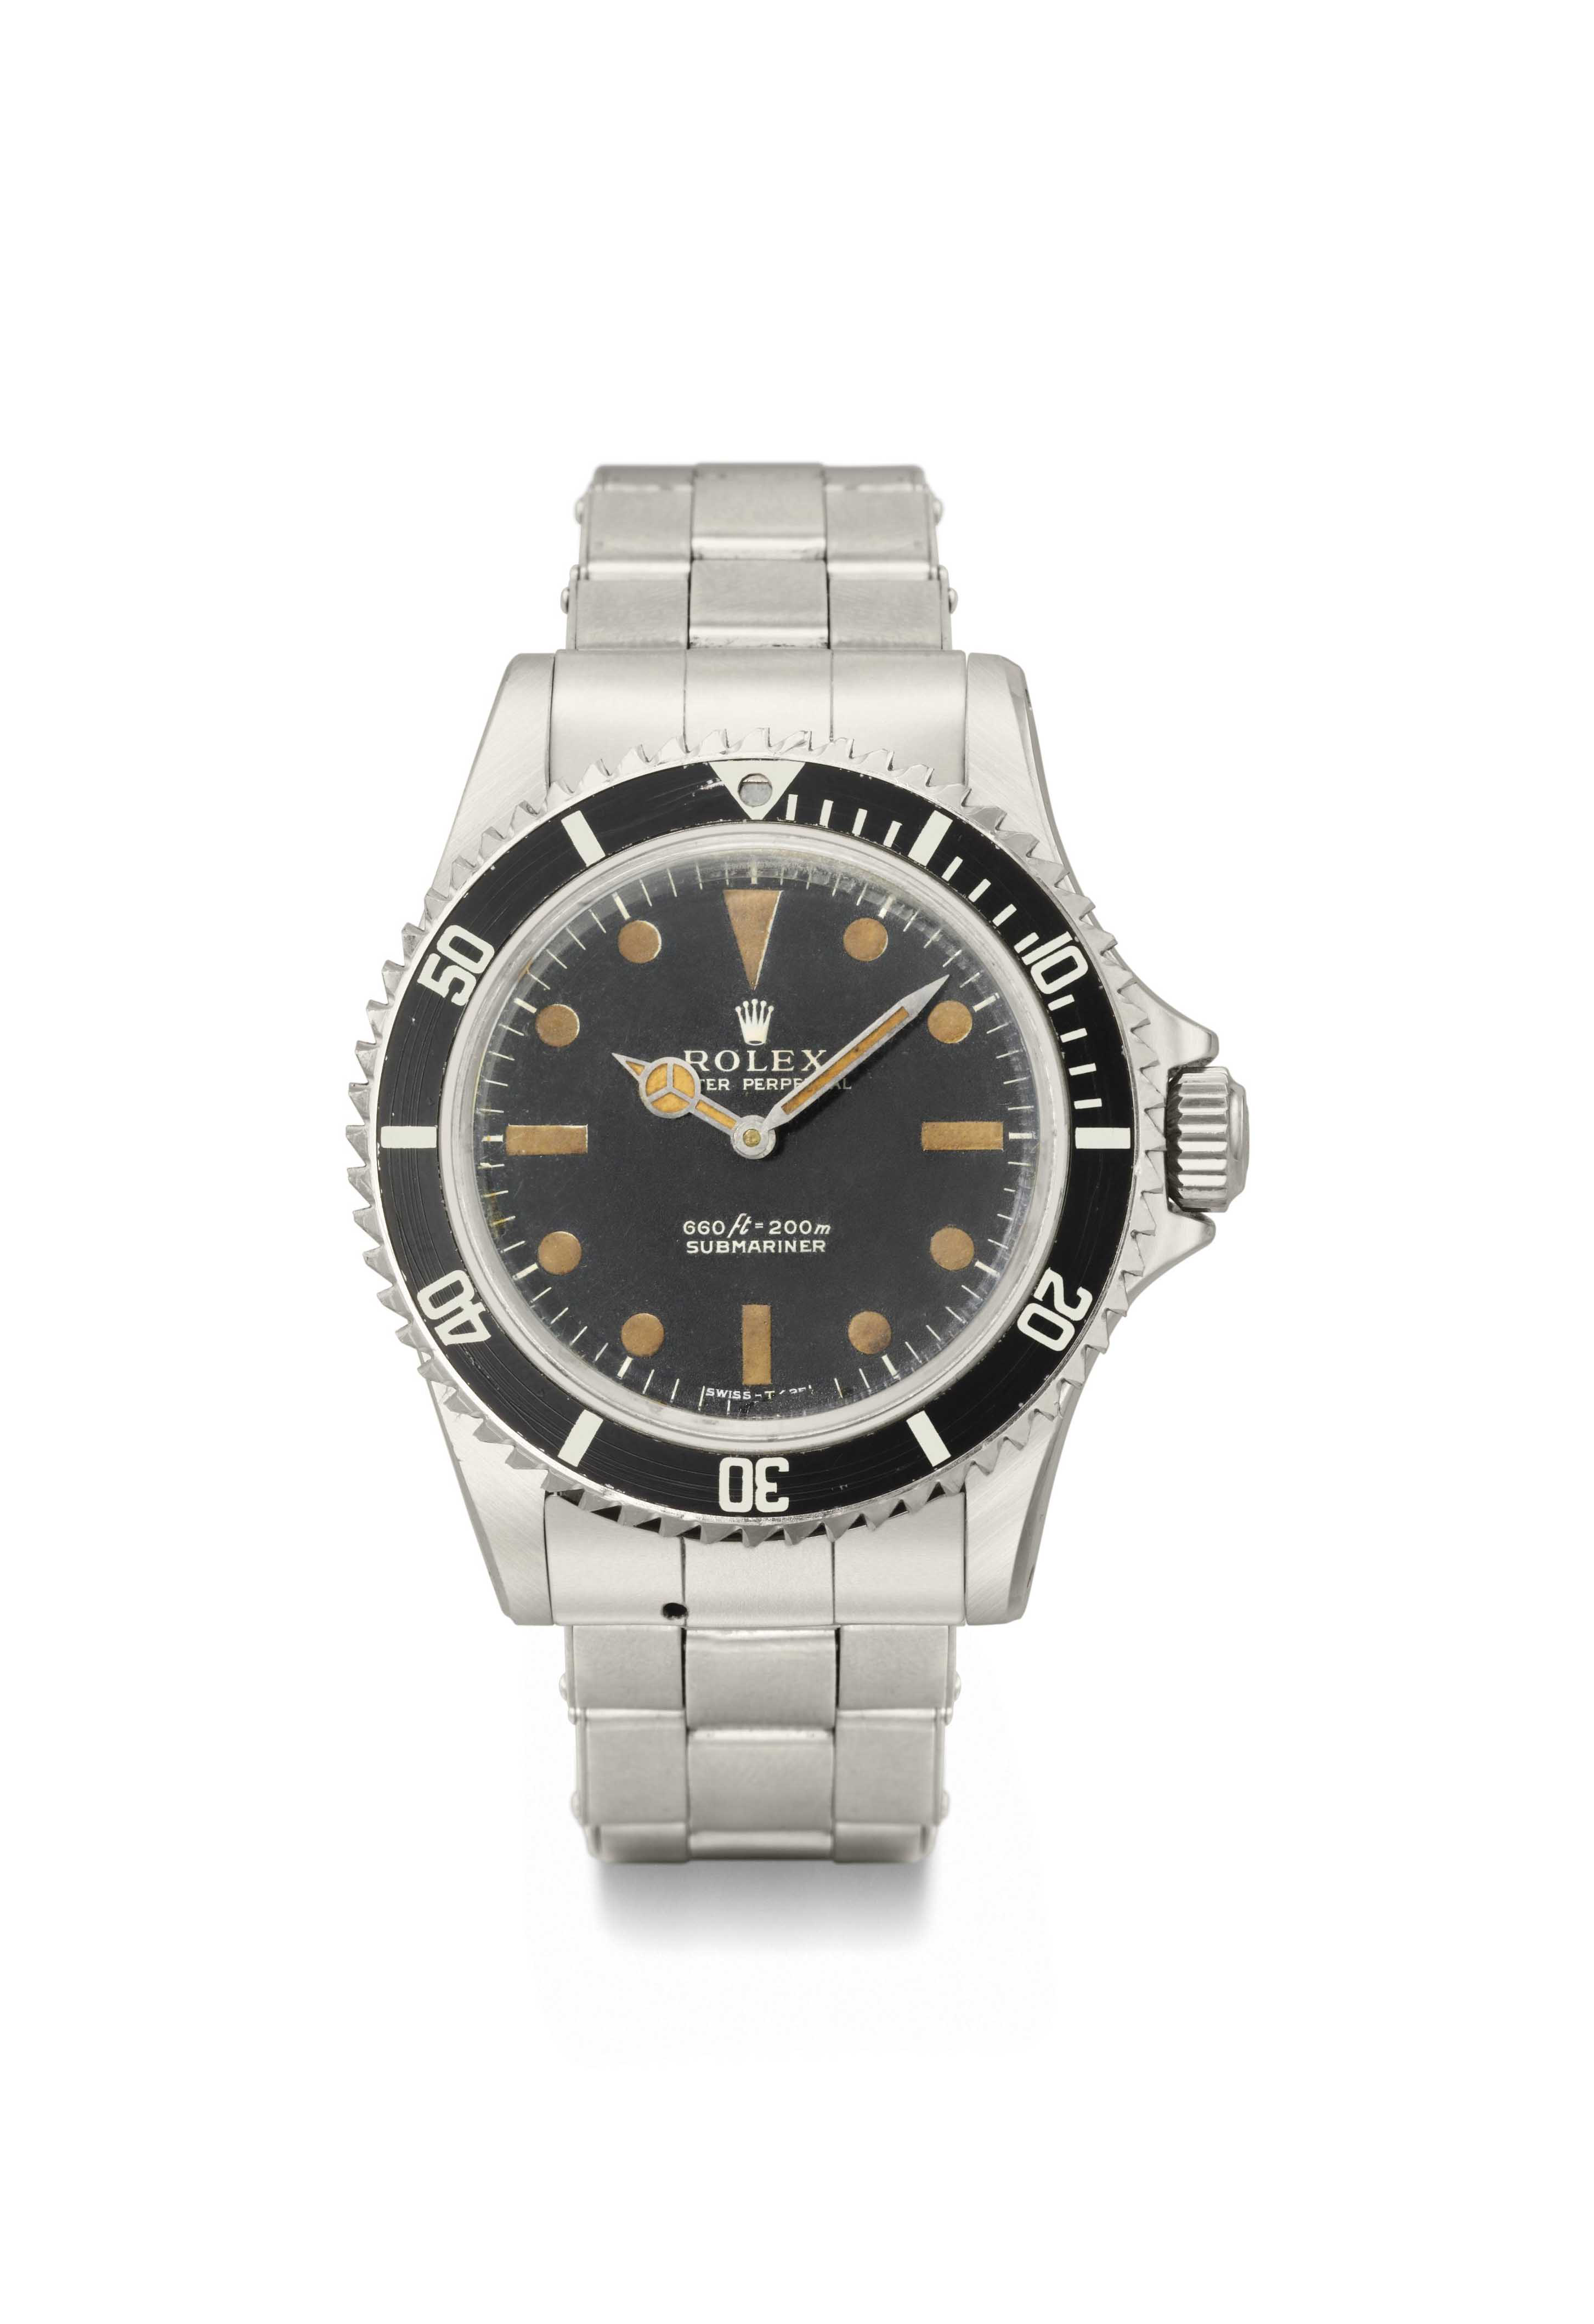 James Bond's specially adapted Rolex wristwatch converted from a stainless steel Rolex Oyster Perpetual Submariner wristwatch